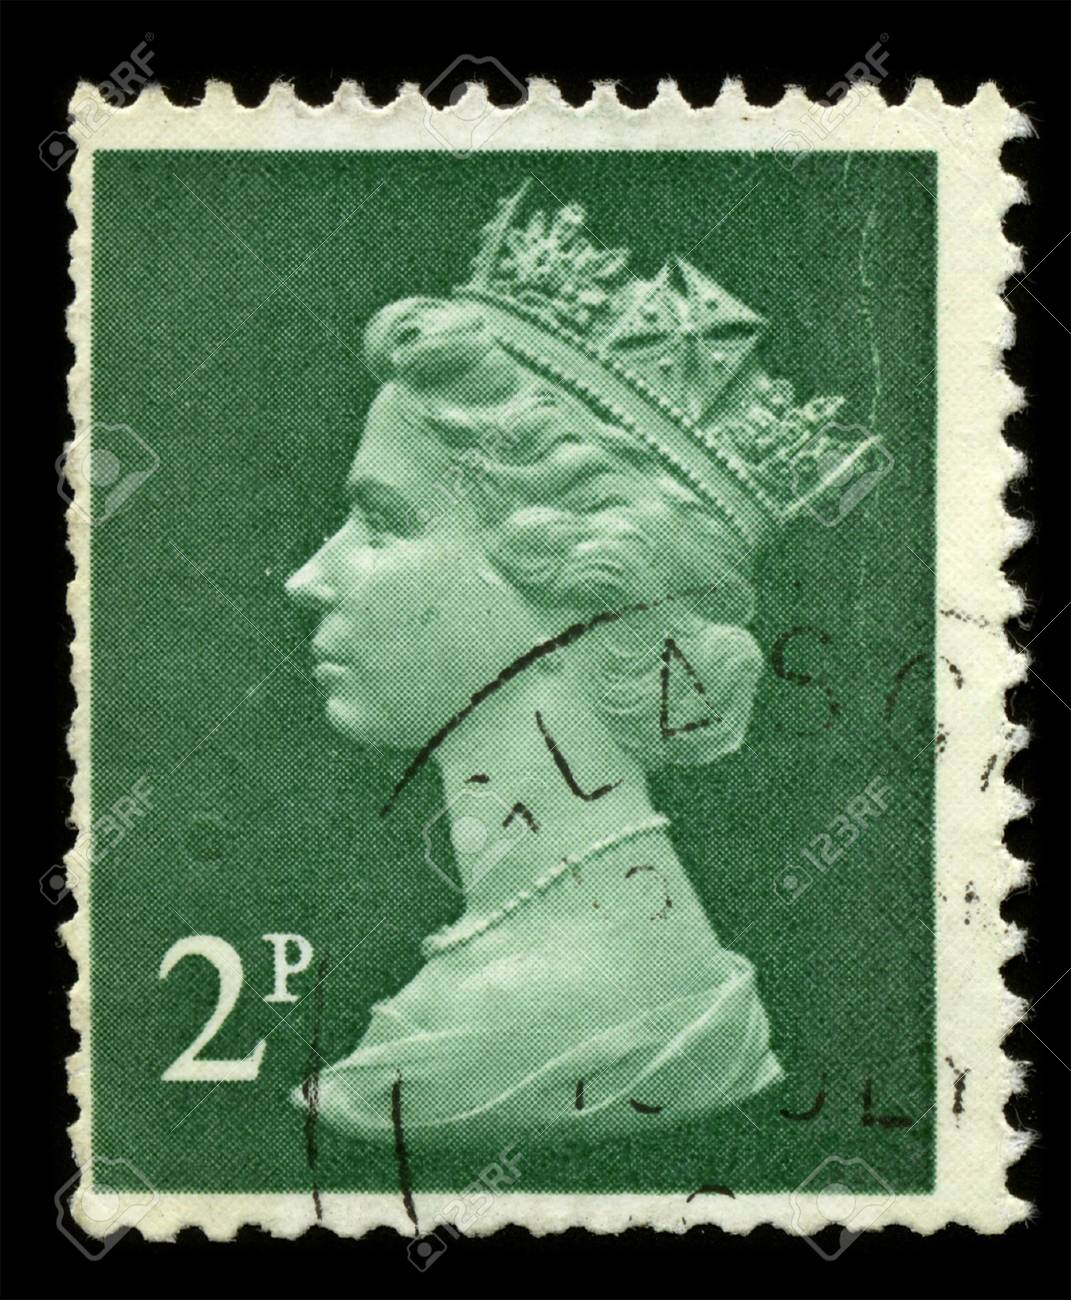 UNITED KINGDOM - CIRCA 1973: An English Used First Class Postage Stamp showing Portrait of Queen Elizabeth in green circa 1973. Stock Photo - 7427924